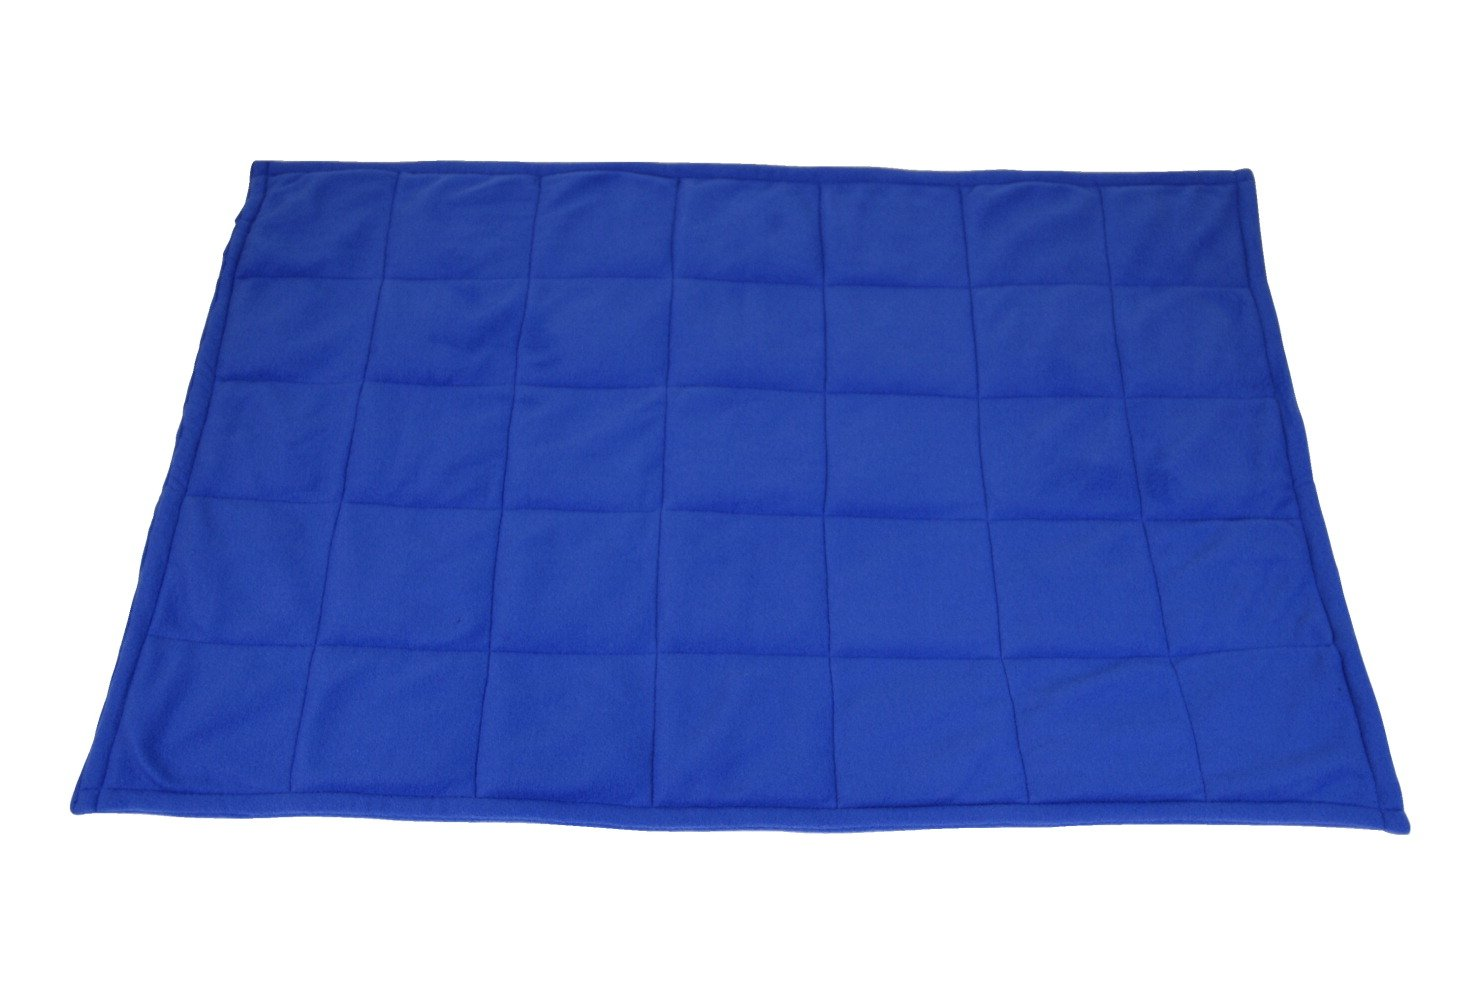 Abilitations Fleece Weighted Blanket, Large, 11 Pounds, Blue